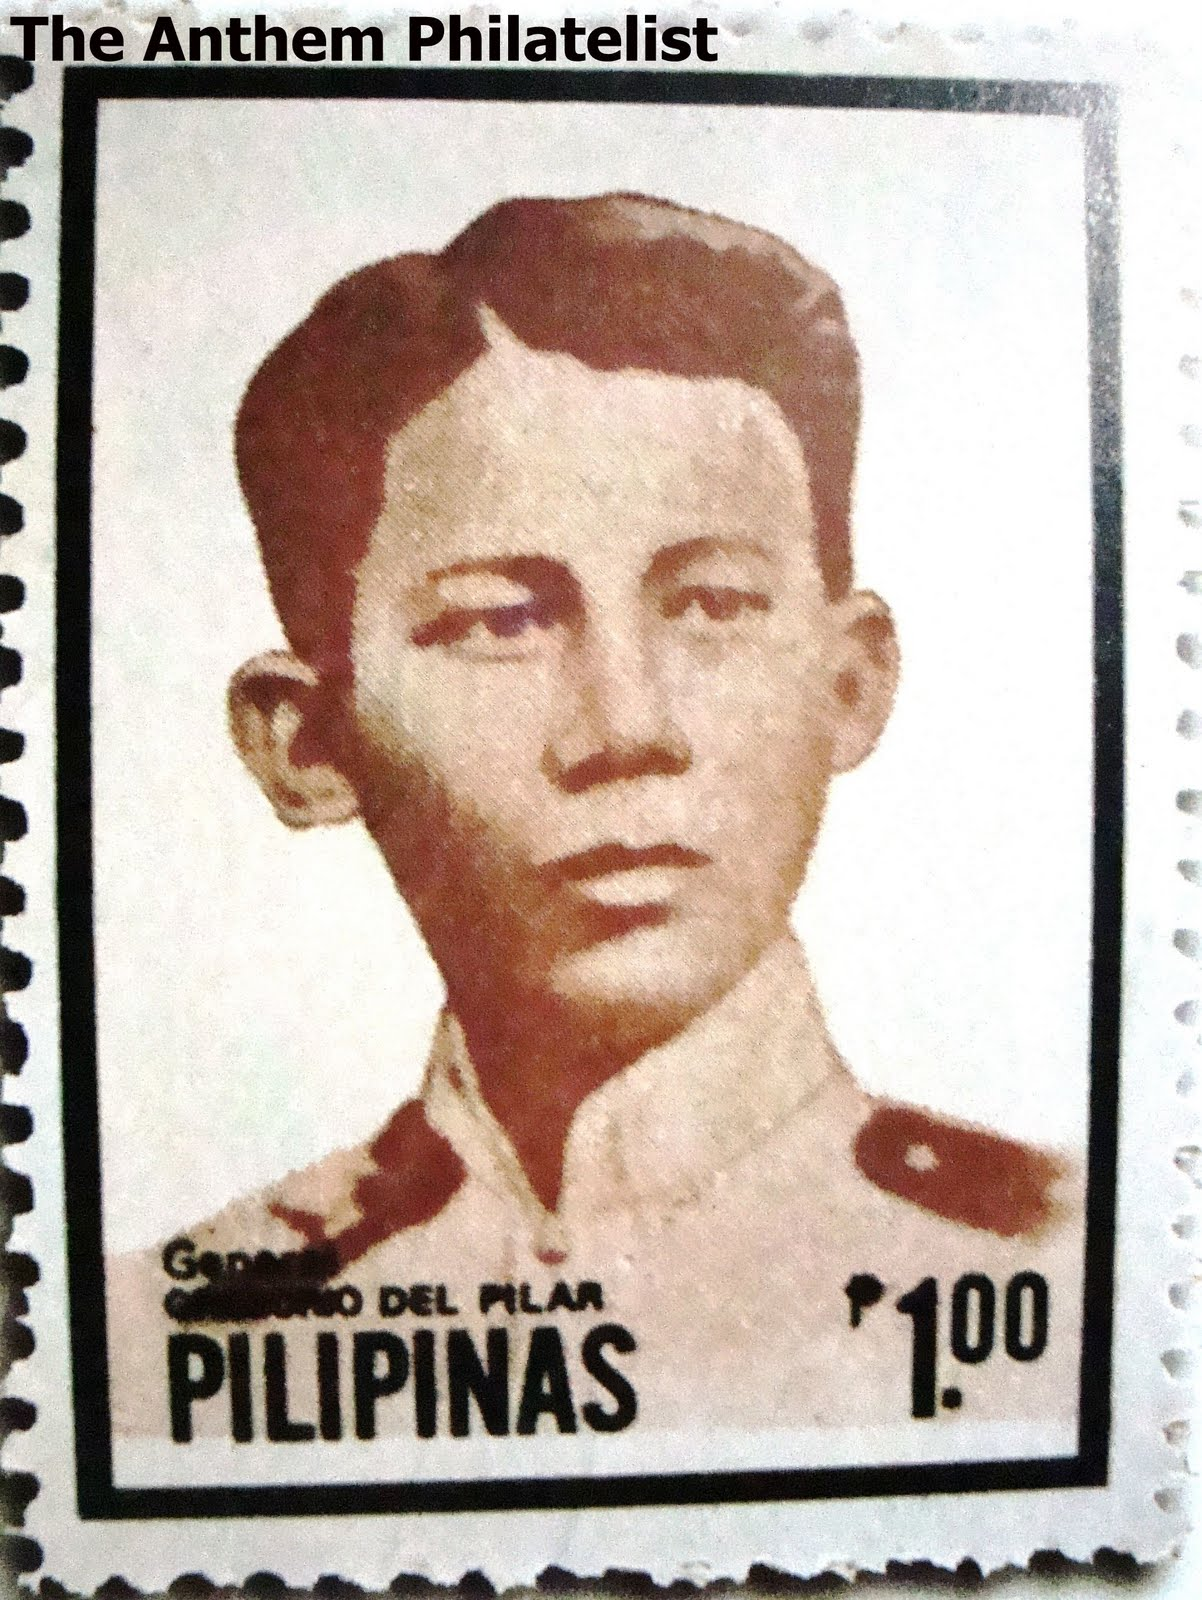 The Anthem Philatelist: Gregorio del Pilar on Stamps